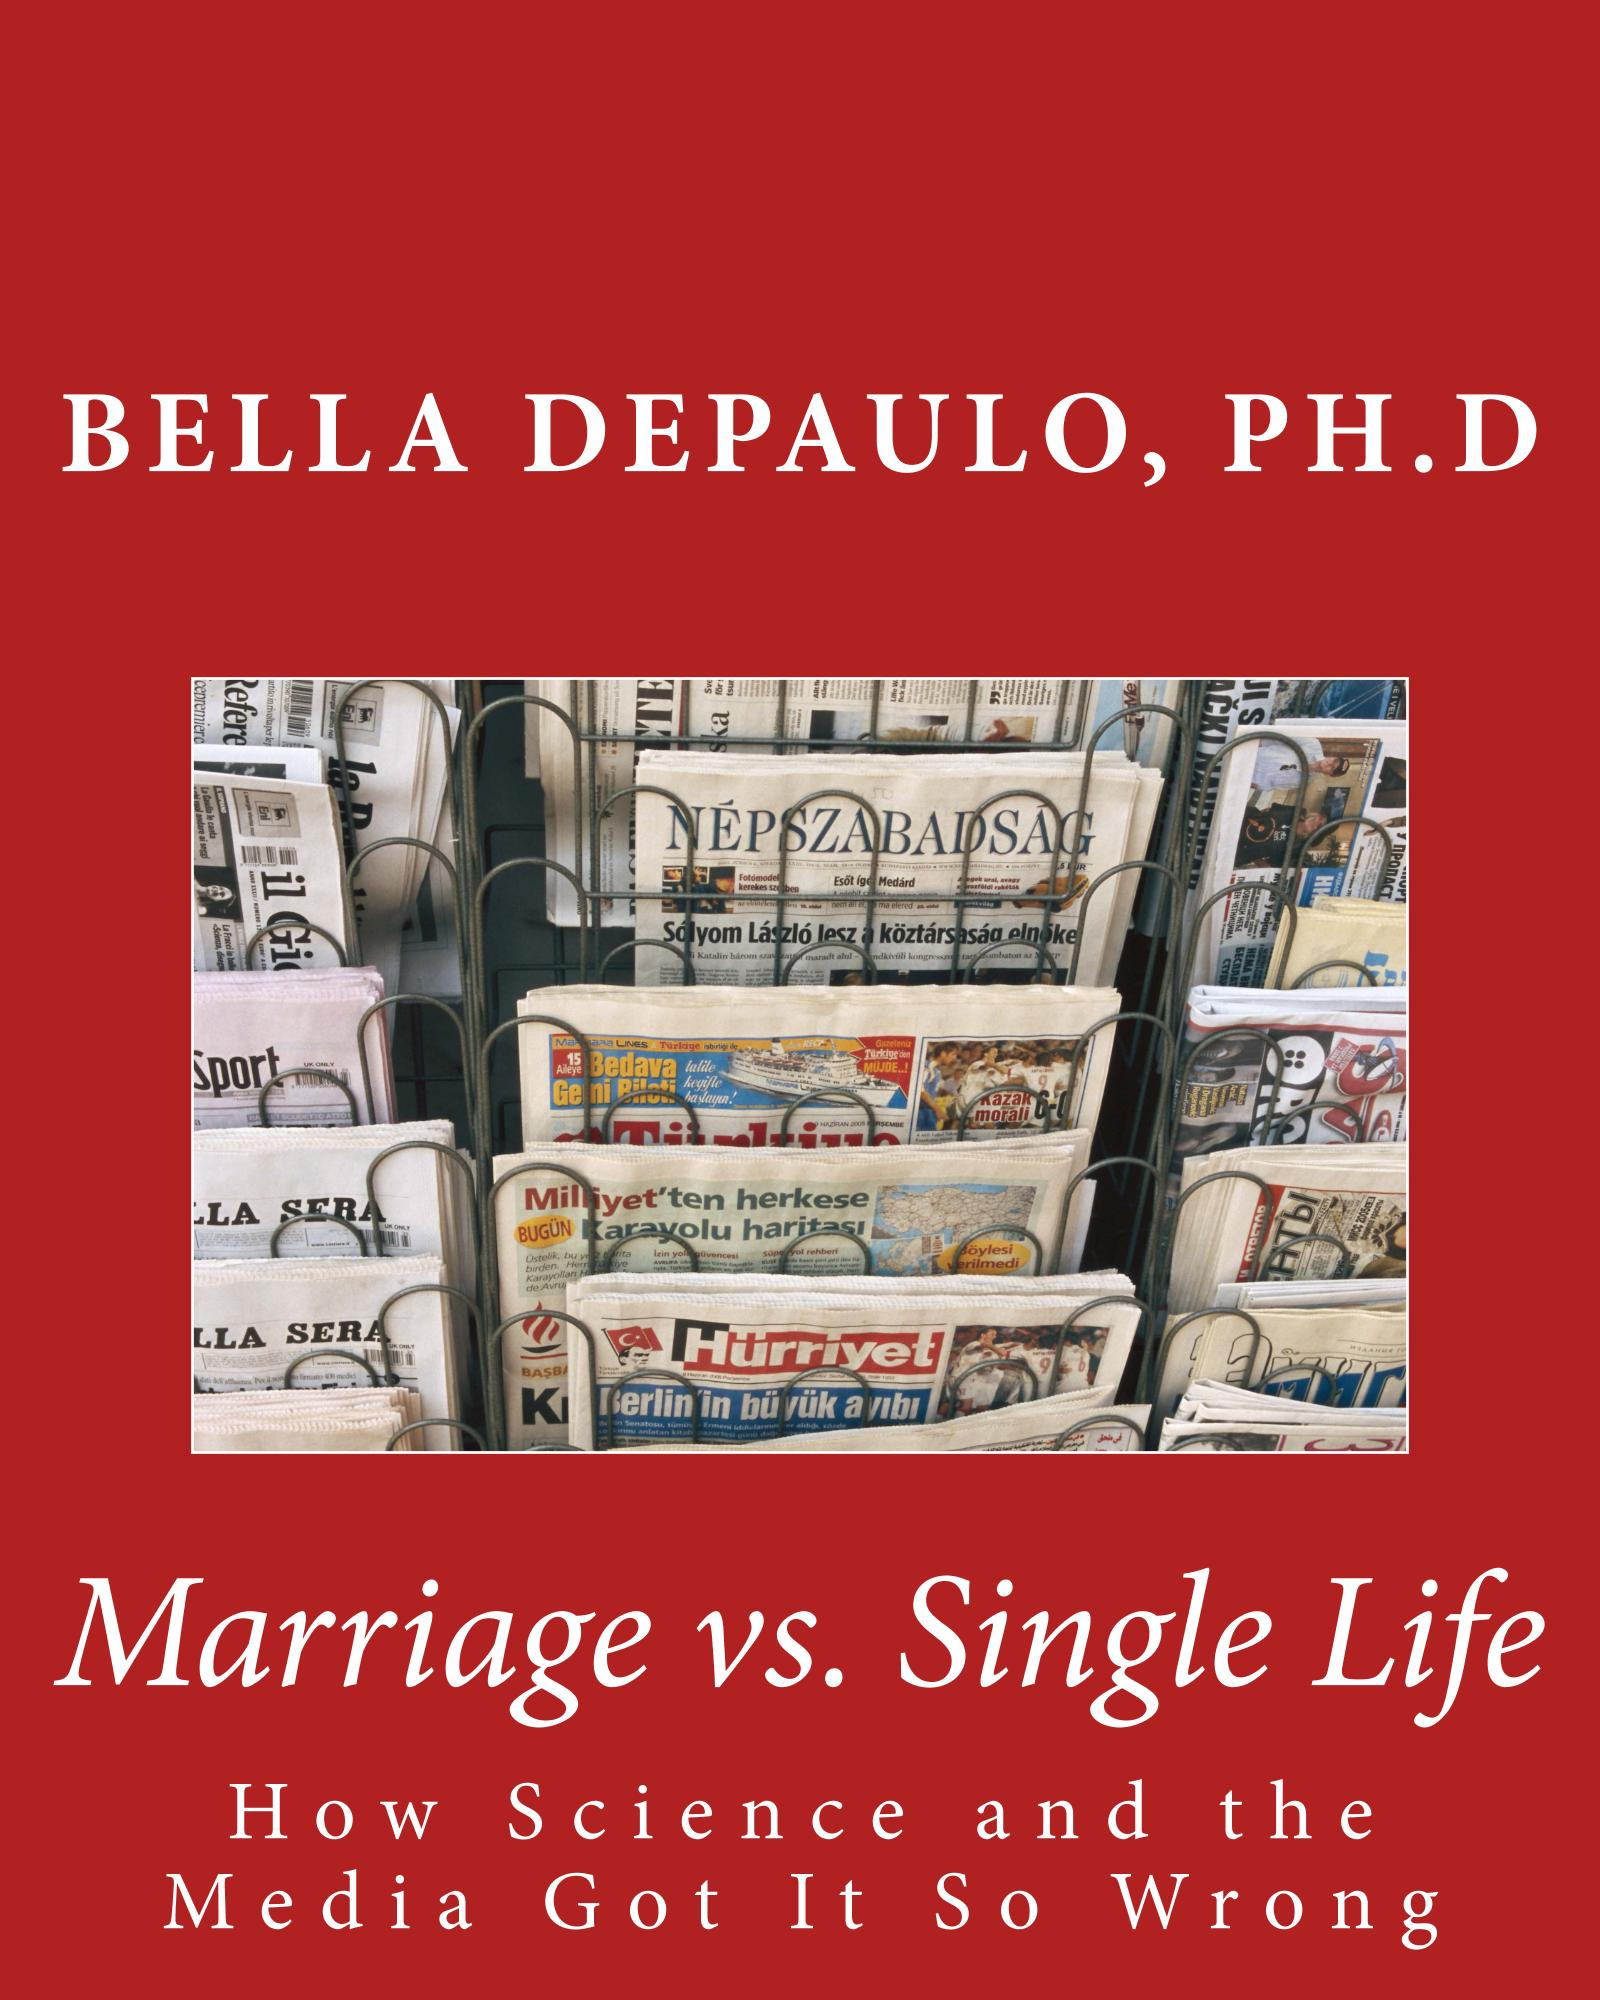 single vs married essay Check out our top free essays on single life vs married life to help you write your own essay.